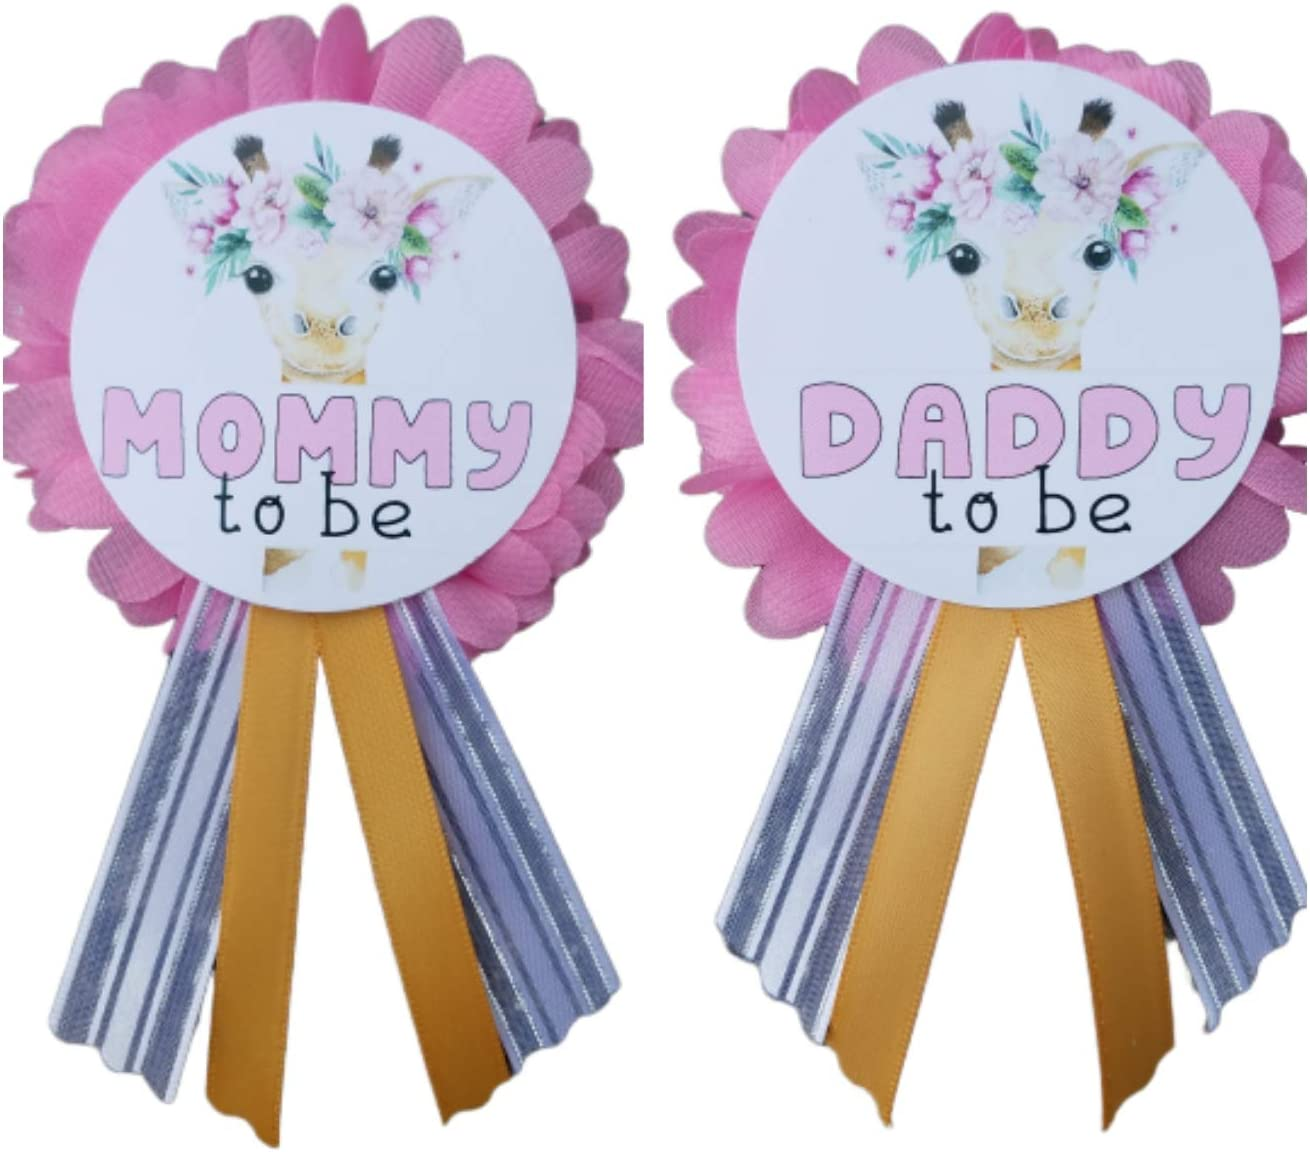 Mom and Daddy Baby Shower Party Pins Gender Reveal Mommy dad Badge Girl Supplies Decorations Kit Safari Theme Set Giraffe Woodland Keepsake